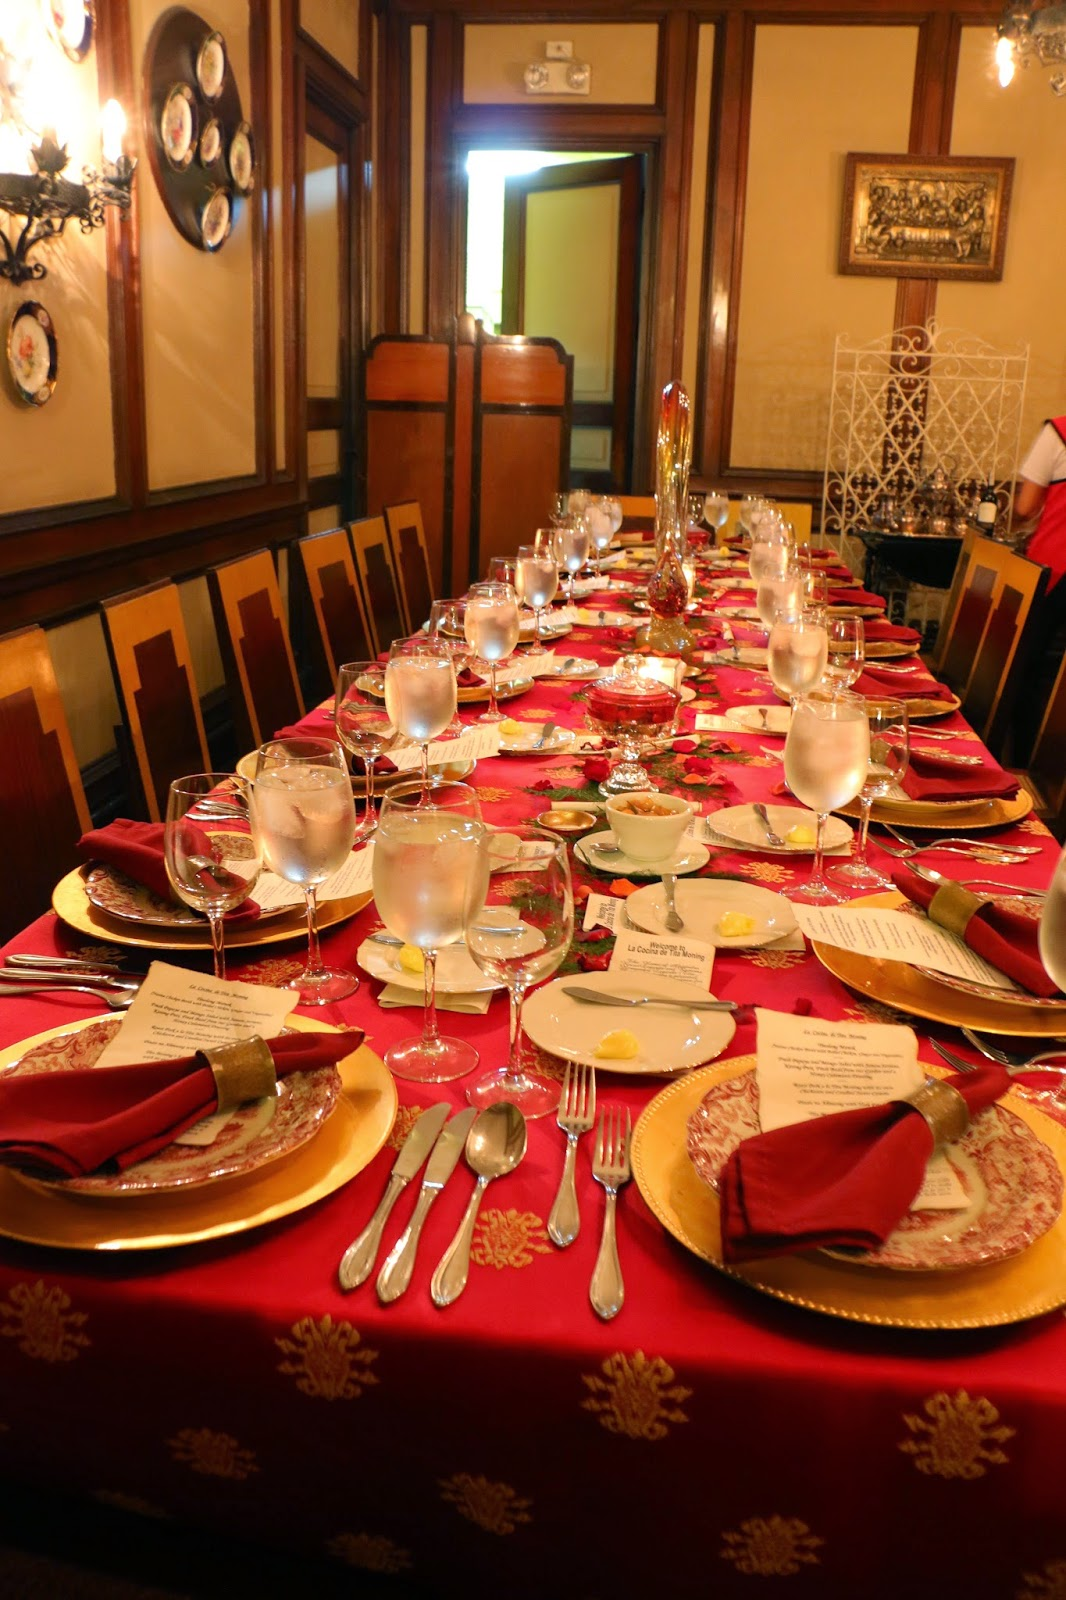 Filipino table setting - Coming To The Food The Table Setting Is Regal And Elegant Being An Exclusive Place It S Popular For Private Business Meetings And Family Gatherings